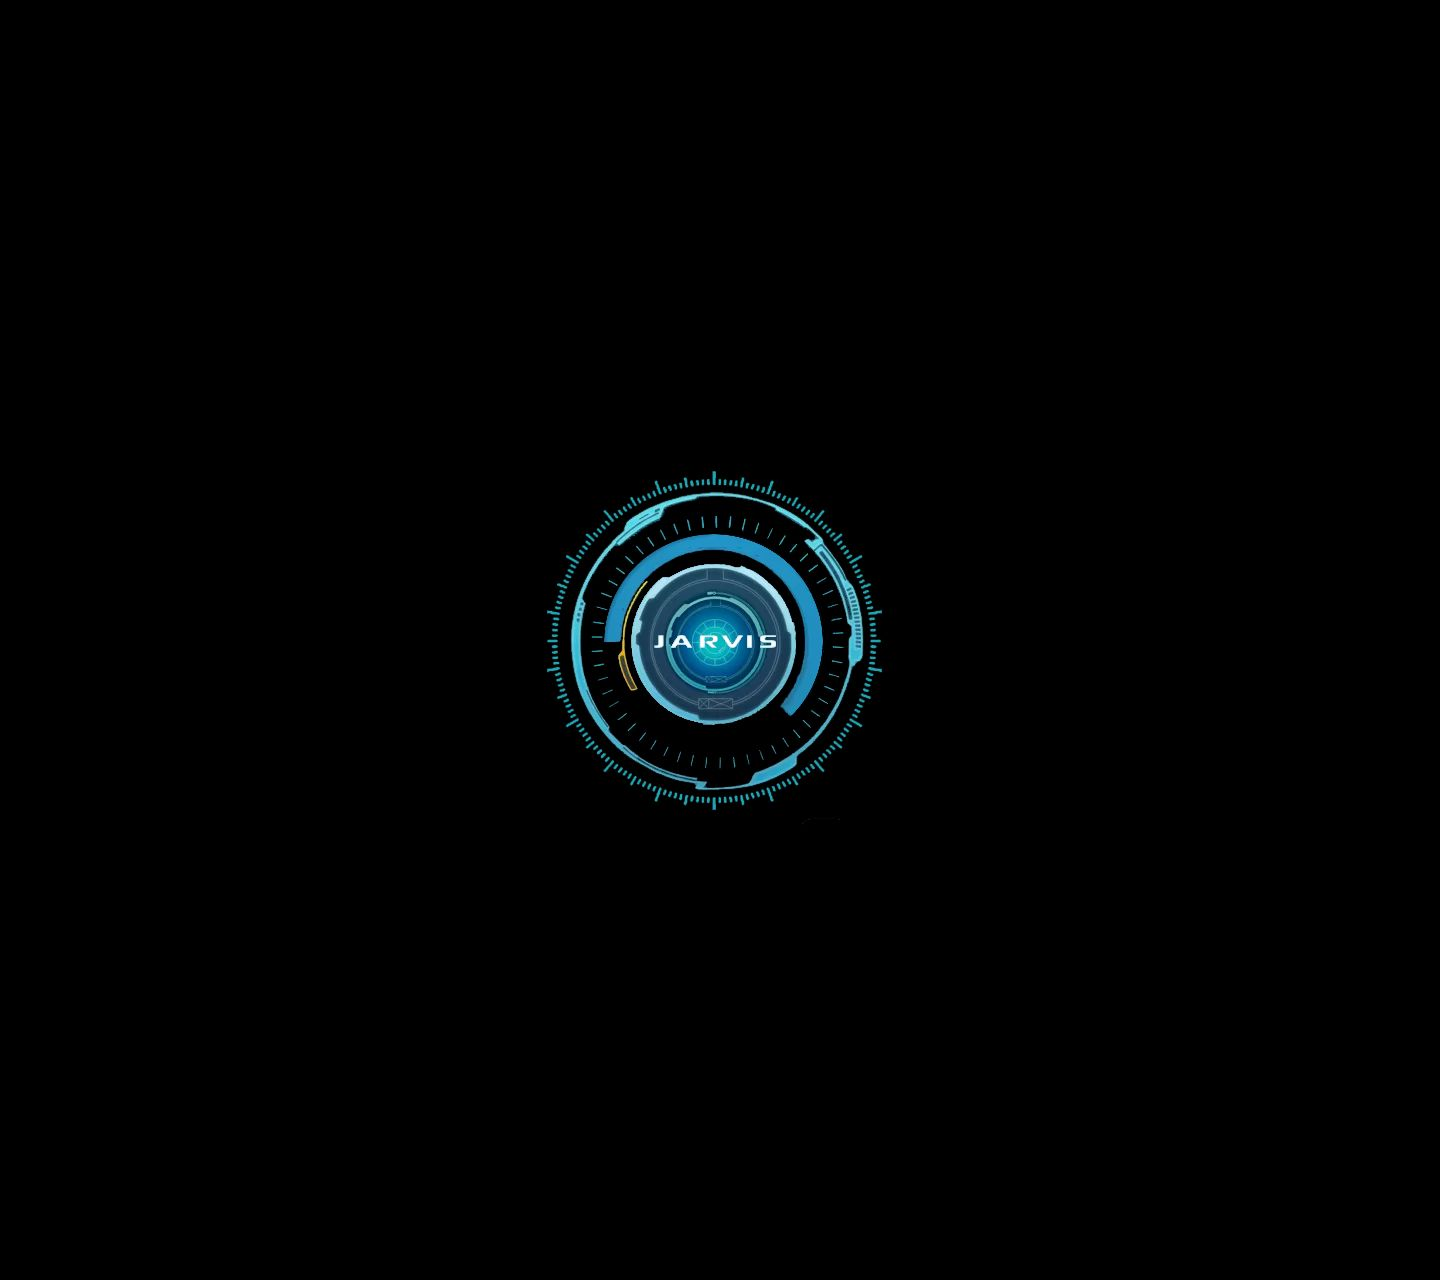 Animated Jarvis Wallpaper Jarvis Iron Man Iron Man Wallpaper Iron Man Iron man jarvis wallpaper hd for iphone